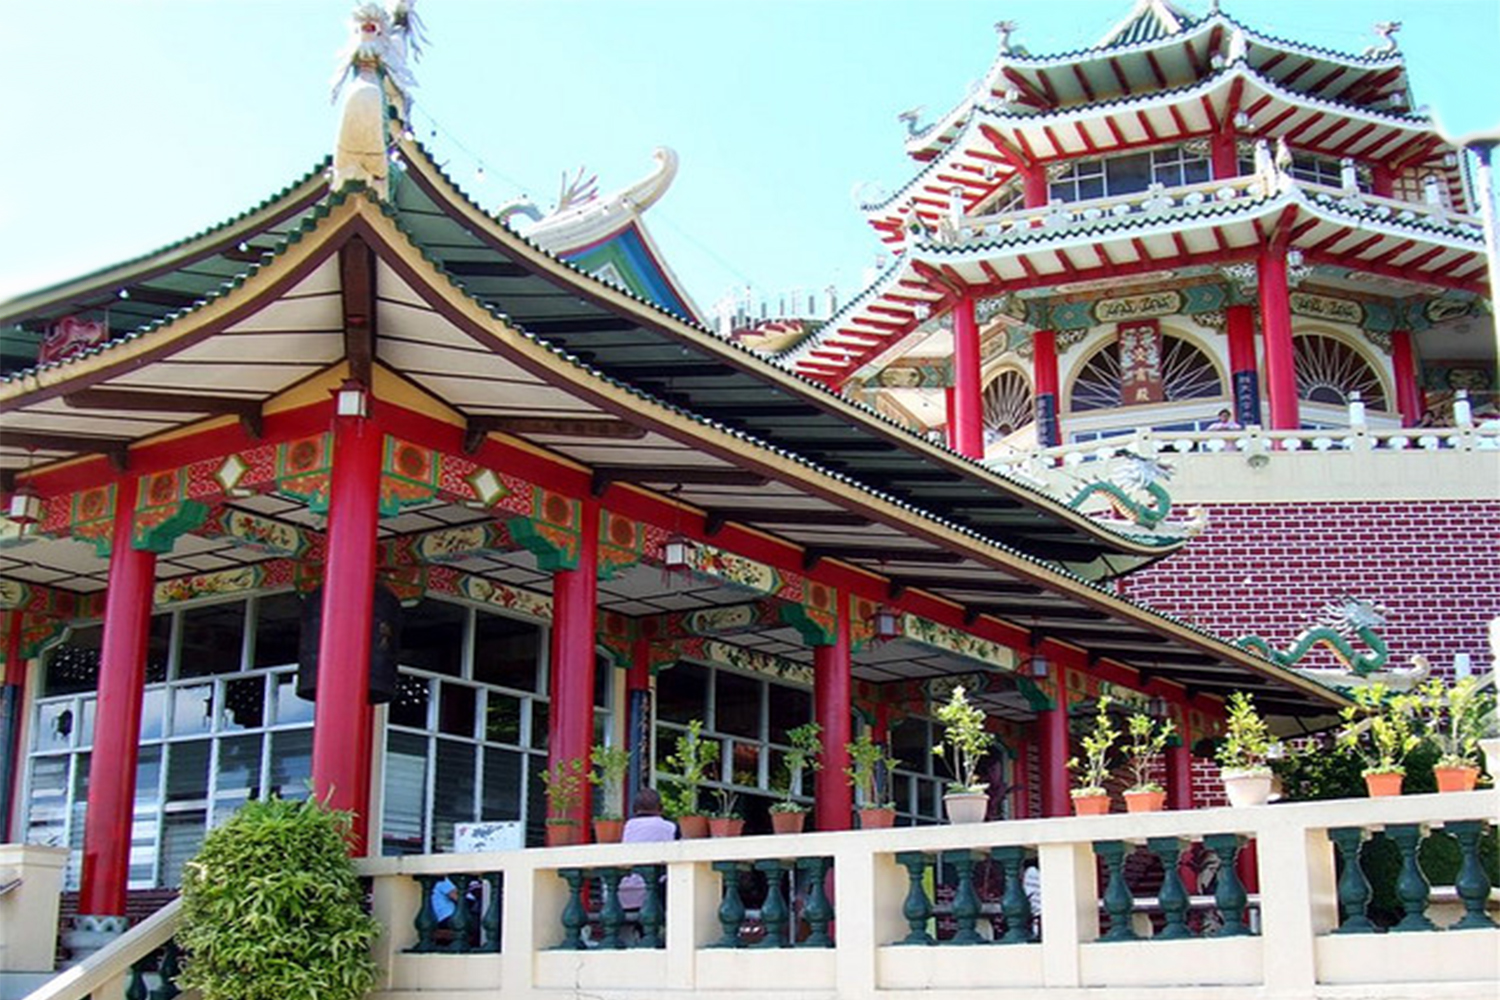 Taoist Temple Top Visit Tourist Spot In Cebu City Philippines likewise Doha city corniche besides Tourist attractions in kingston together with The Biltmore Estate George Vanderbilt Mansion Is The Largest Privately Owned Home In America besides Mexican Fan Palm. on beverly hills tourist attractions